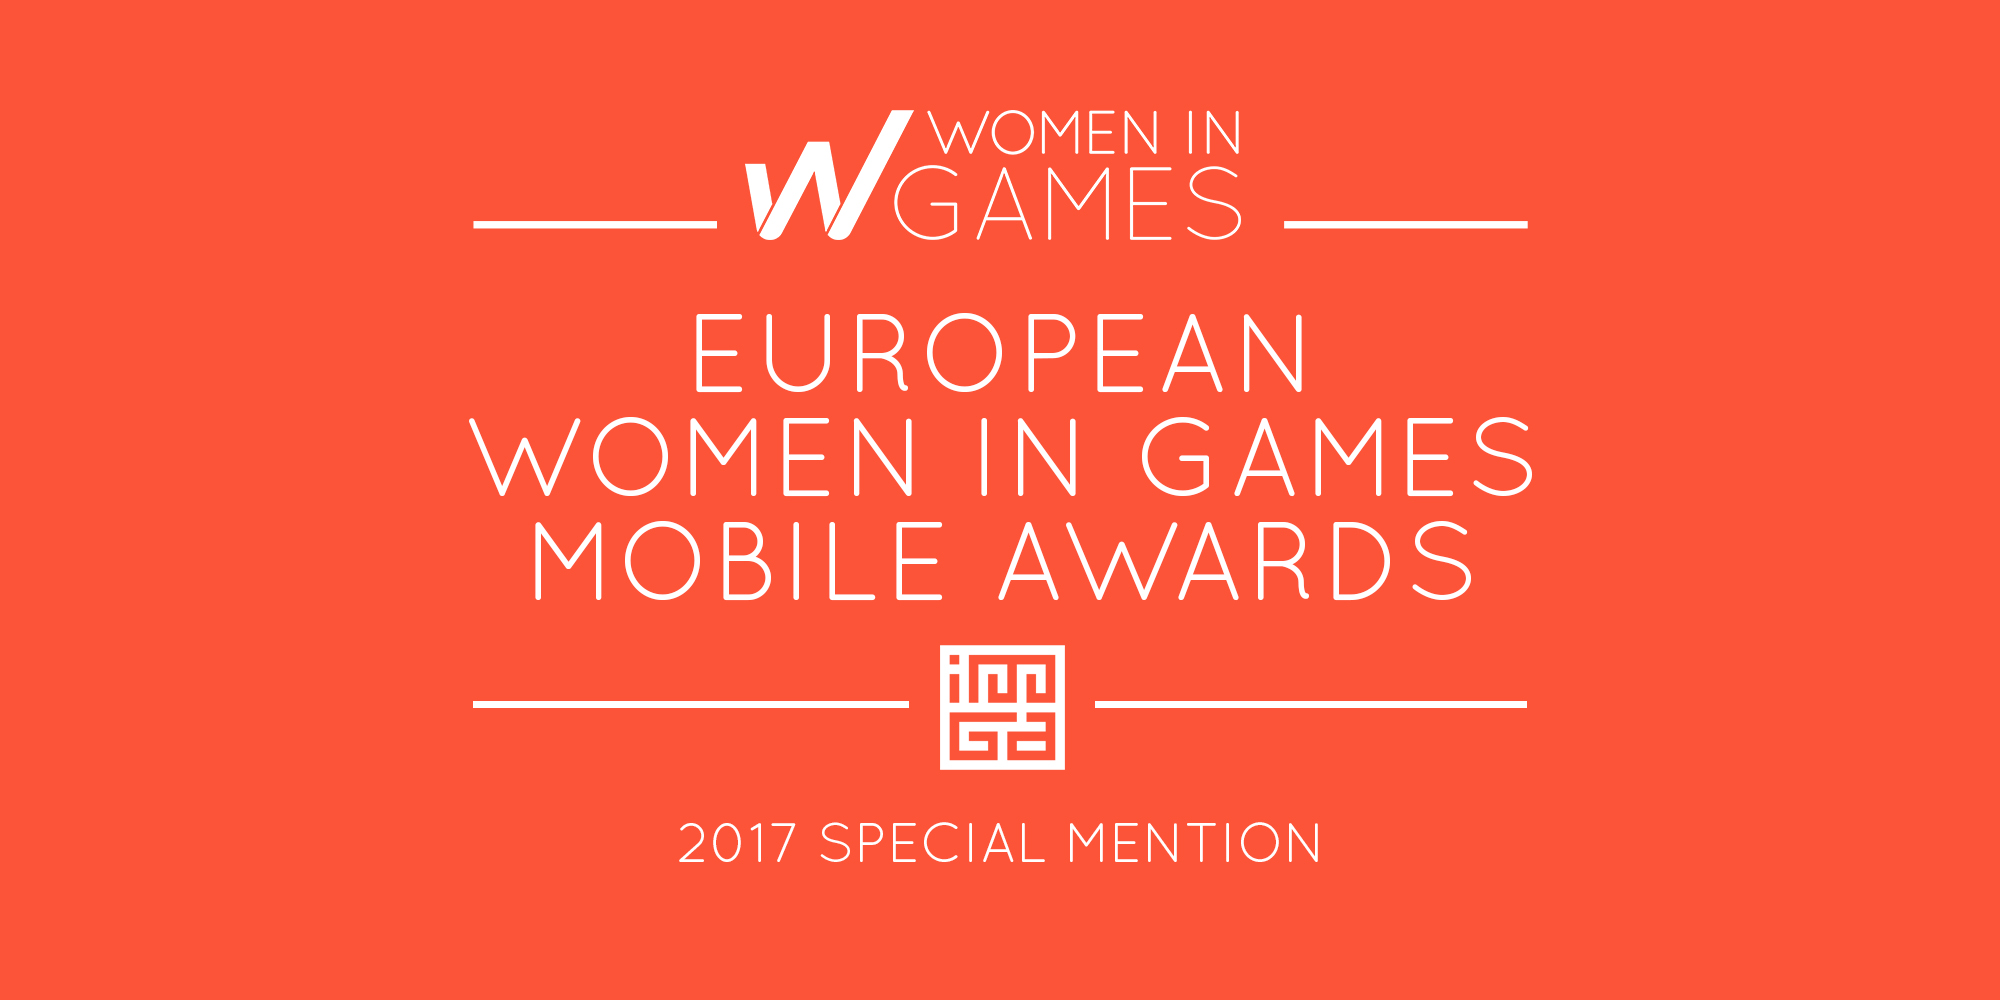 EWIG_2017_Mobile_Awards_Special_Mention.jpg